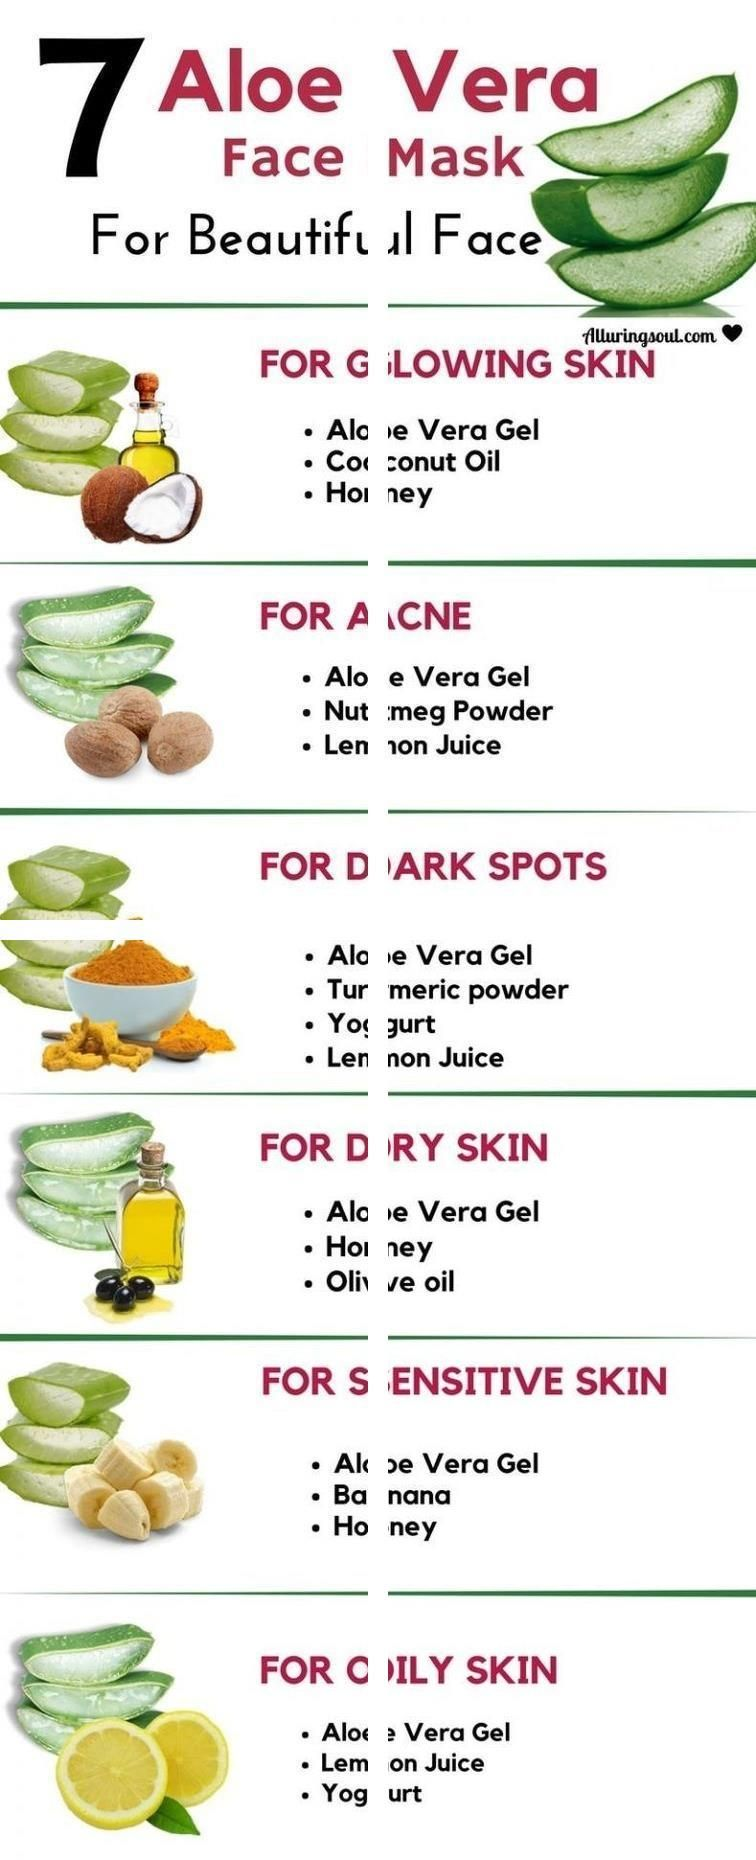 Roc Skin Care Best Organic Skin Moisturizer Skin All Natural Aloe Vera Face Mask Aloe Vera For Face Aloe Vera Gel Face